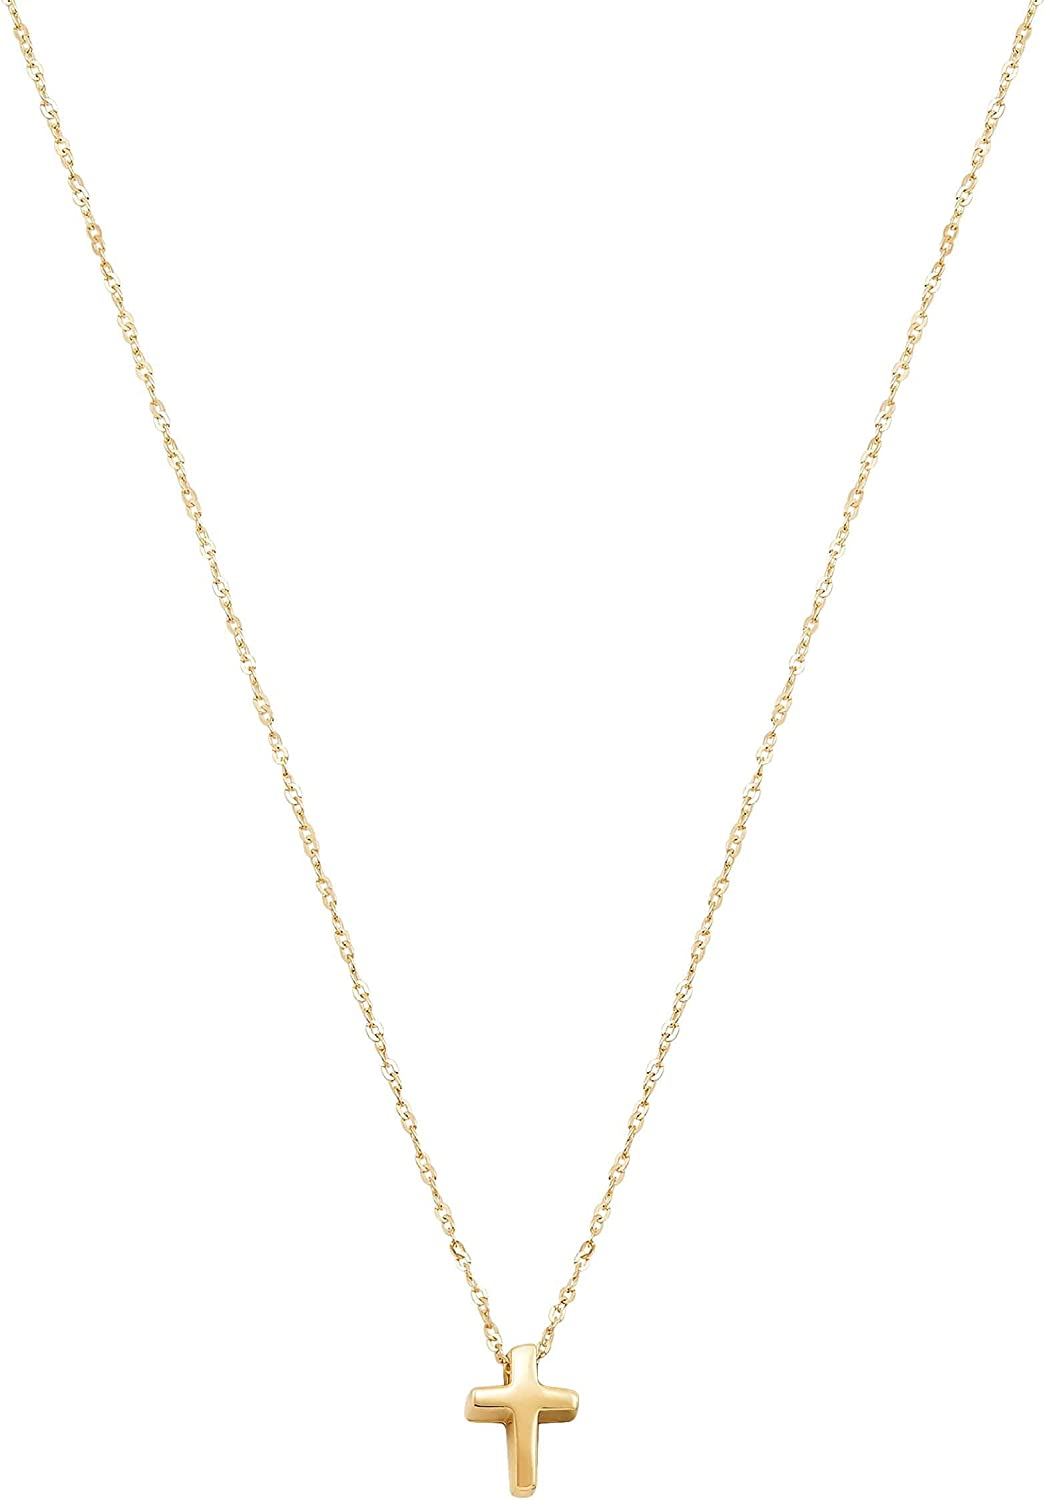 Welry 'Cross Pendant Necklace' in 14K Yellow Gold, 18